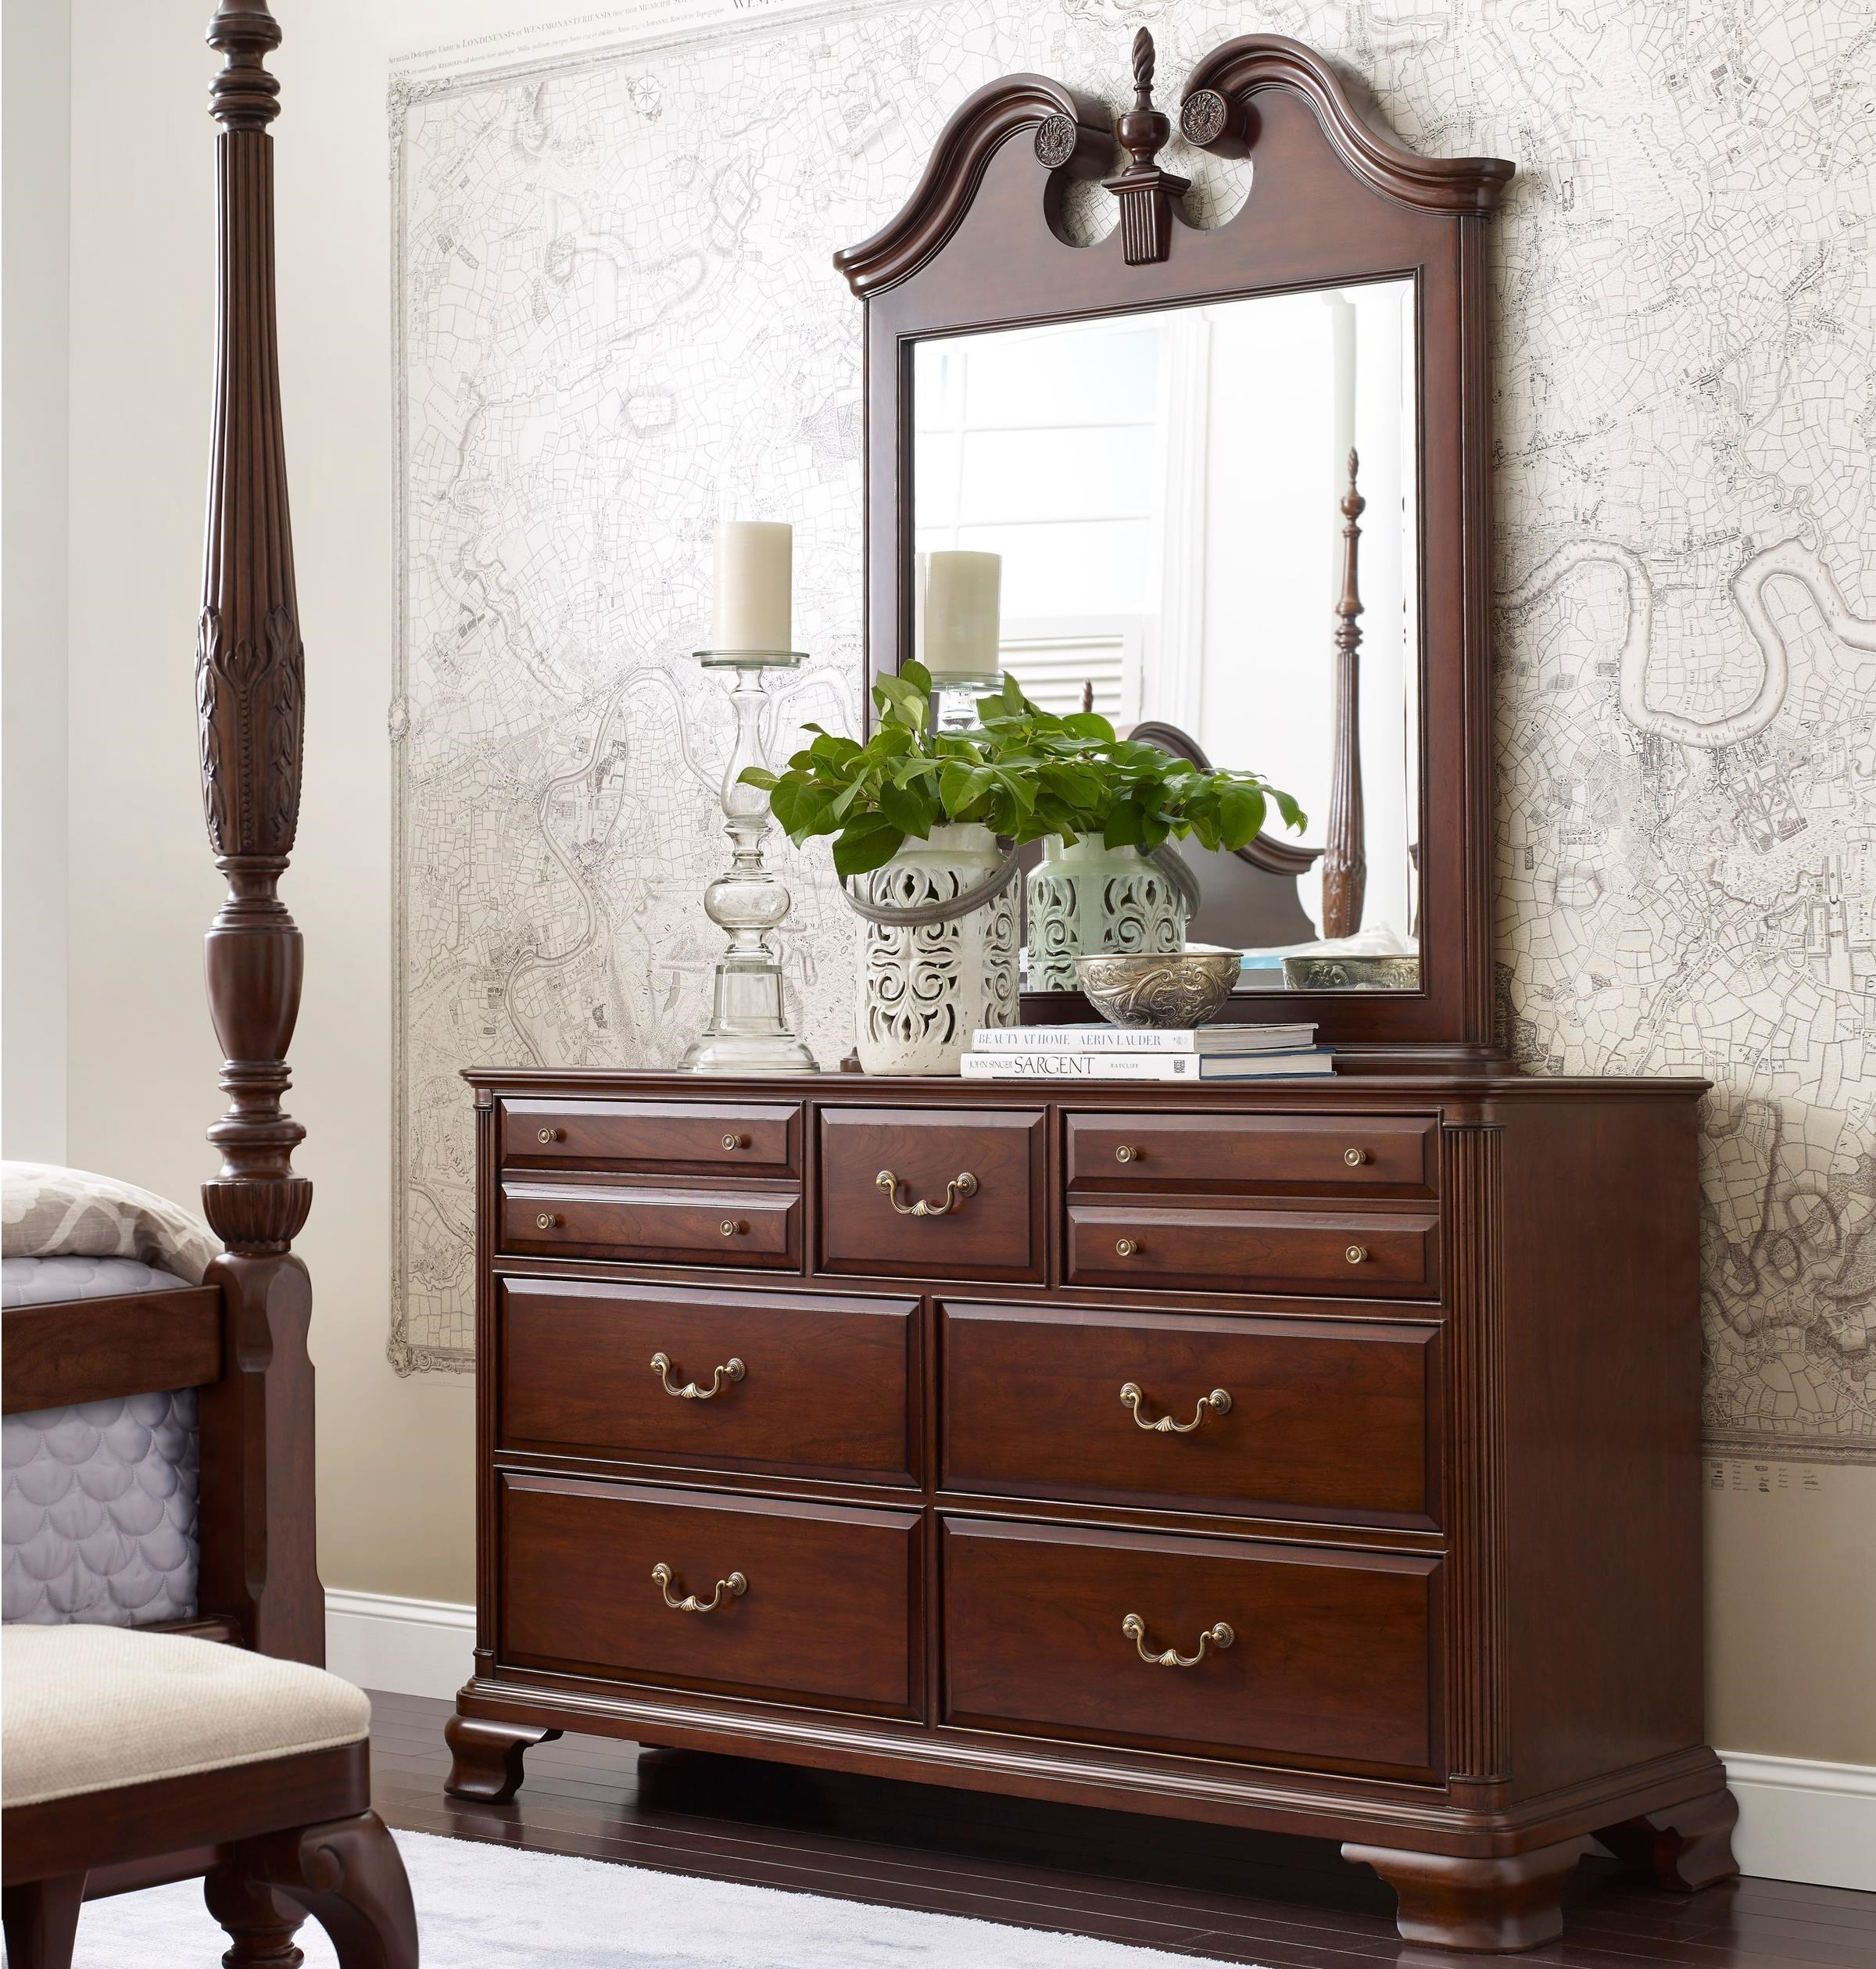 kincaid furniture hadleigh traditional dresser and mirror set with bureau and pediment mirror. Black Bedroom Furniture Sets. Home Design Ideas